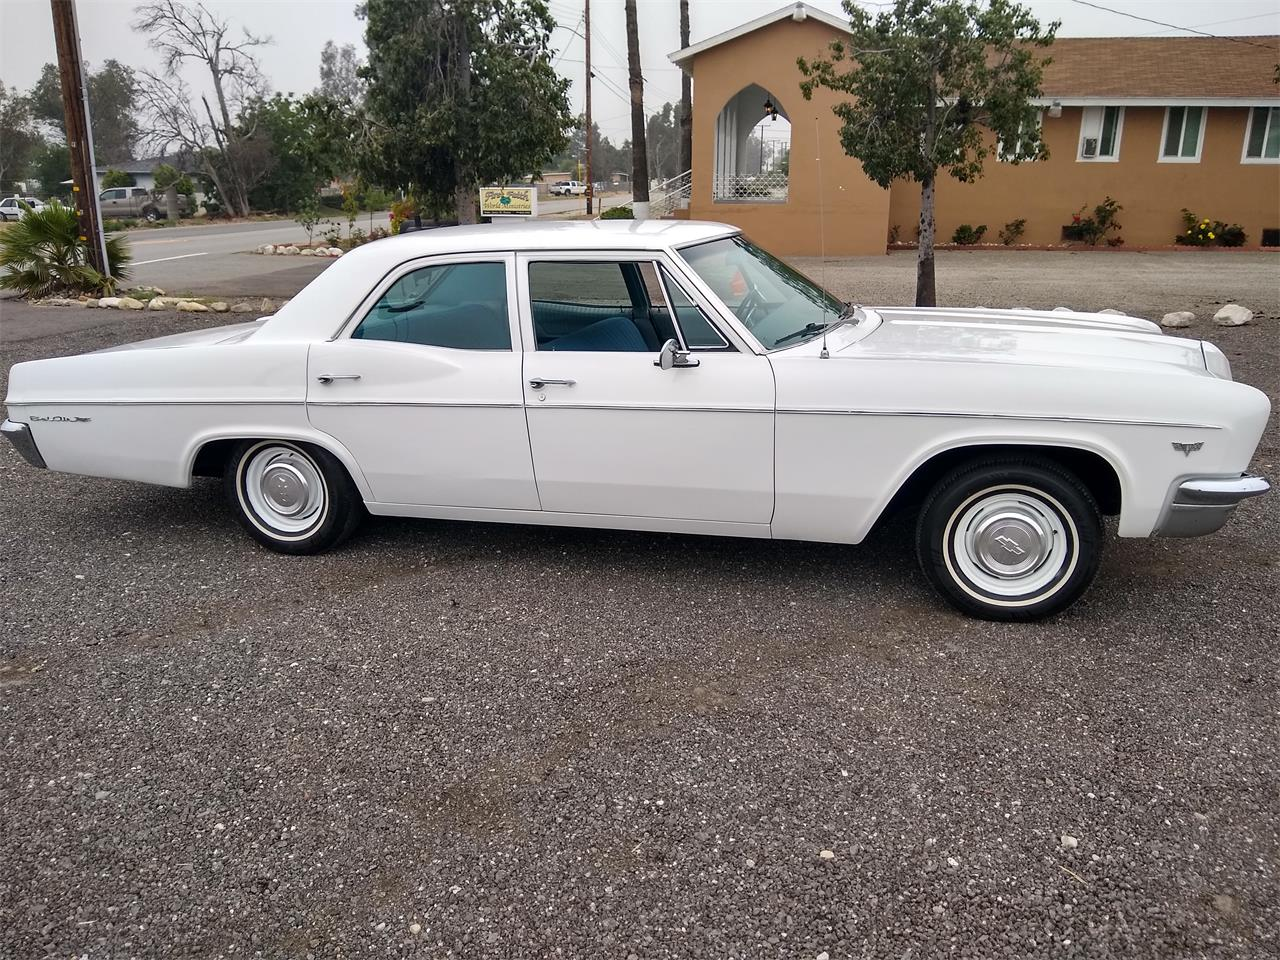 Large Picture of Classic 1966 Bel Air located in Loma Linda  California Offered by a Private Seller - Q8ZE